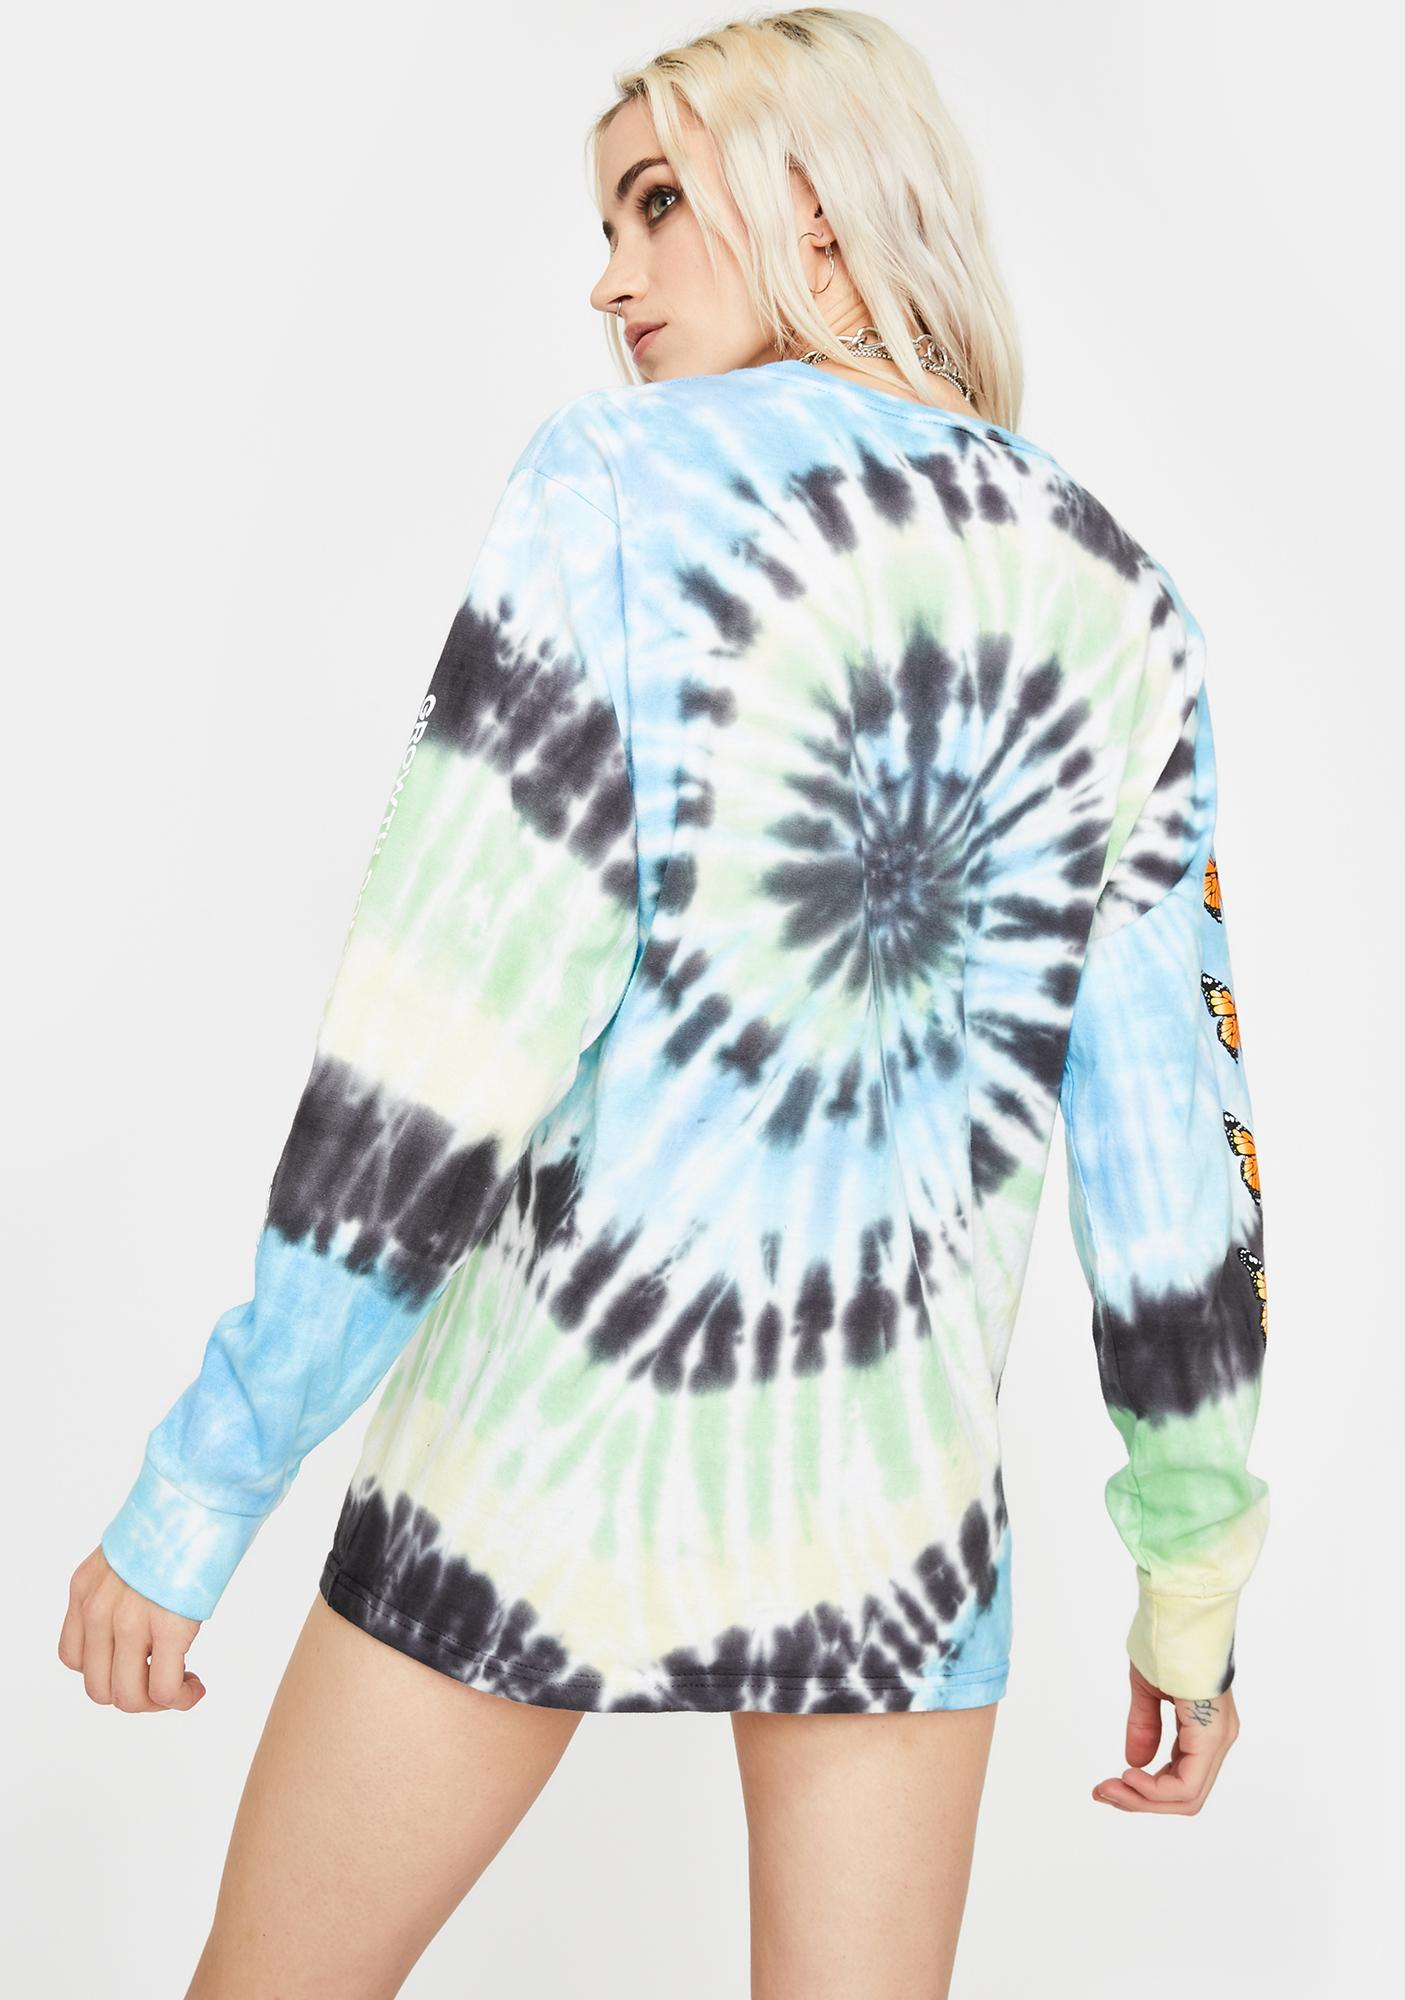 By Samii Ryan Growth Graphic Long Sleeve Tee